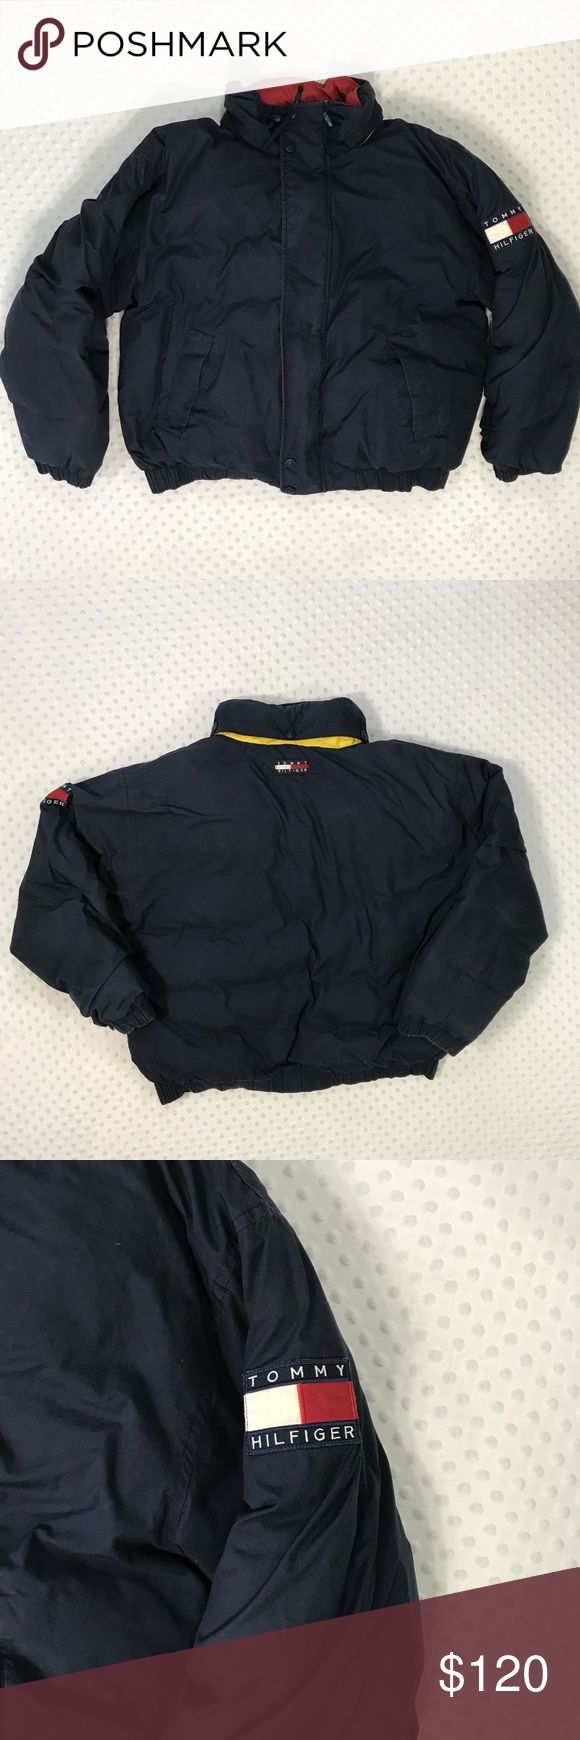 Vintage Tommy Hilfiger Flag Patch Men's X Large Item: Vintage Tommy Hilfiger Blue Puffer Down Jacket Flag Patch Men's Size X Large Size: X Large Refer to measurements below for accurate fit! Measured flat:  28       inches armpit to armpit 22       inches armpit to the end of the sleeve 28       inches from collar seam to shirttail        Base Color:  Blue  Fabric: Cotton, Nylon, Down, Feather Tommy Hilfiger Jackets & Coats